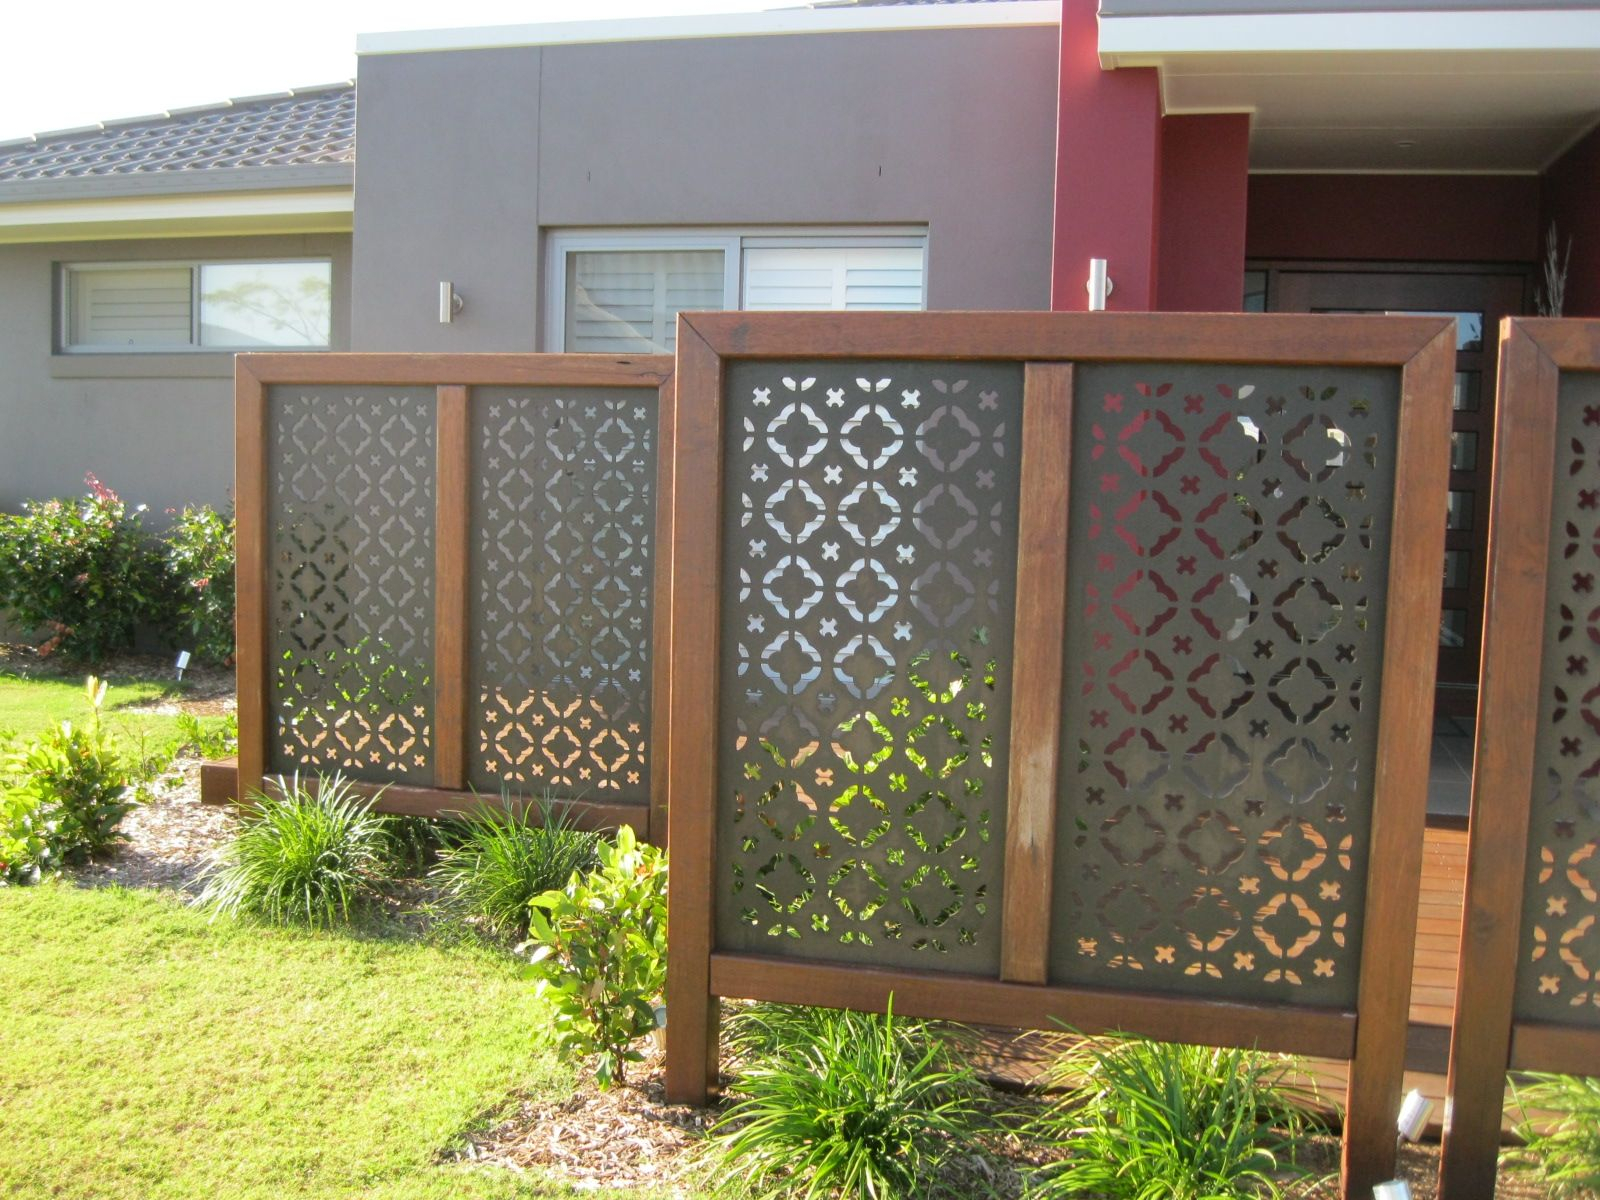 11 Clever Initiatives Of How To Craft Backyard Screen Ideas intended for Privacy Screen Ideas For Backyard